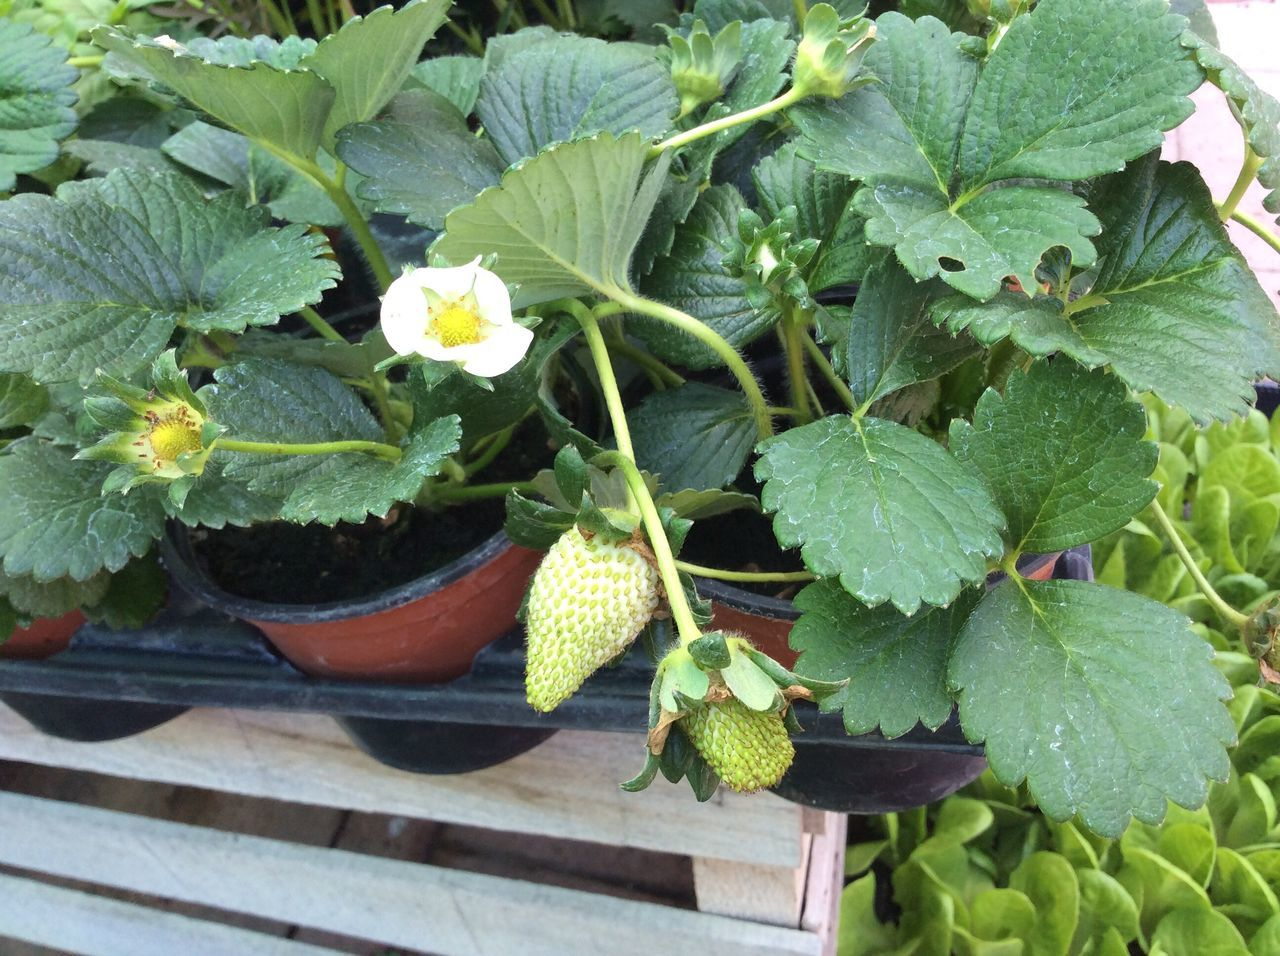 Natural Green  Pots Flower Shop Natural Strawberry Flower Strawberry Flower Growing Strawberry Green Strawberry